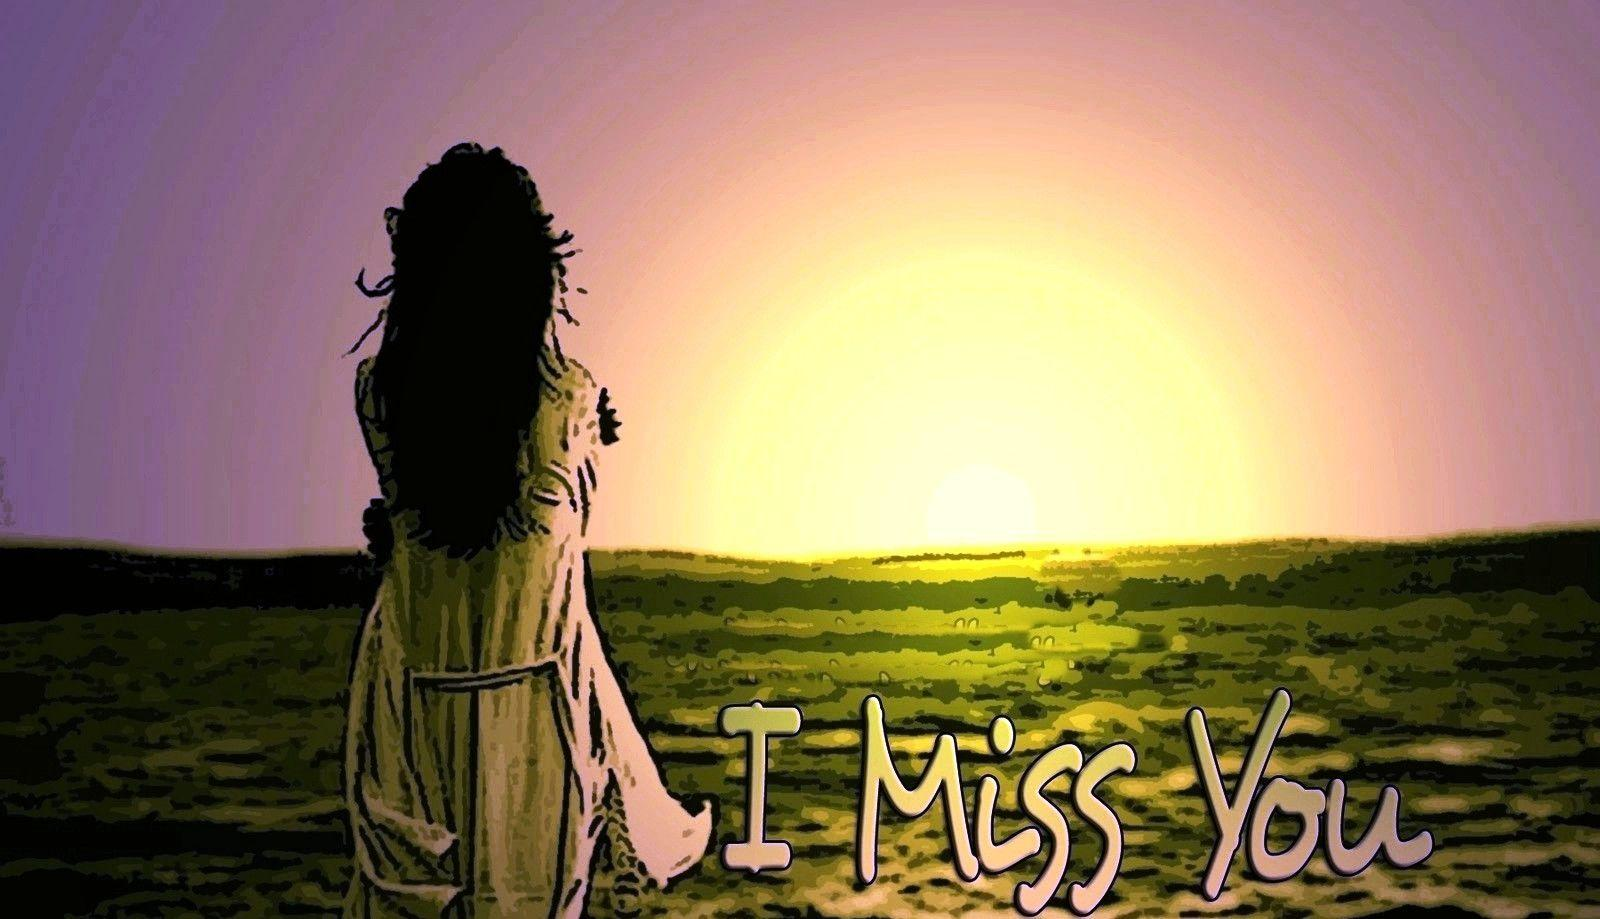 Wallpaper download i miss you - I Miss You Wallpapers Free Download Wallpapers Daddy